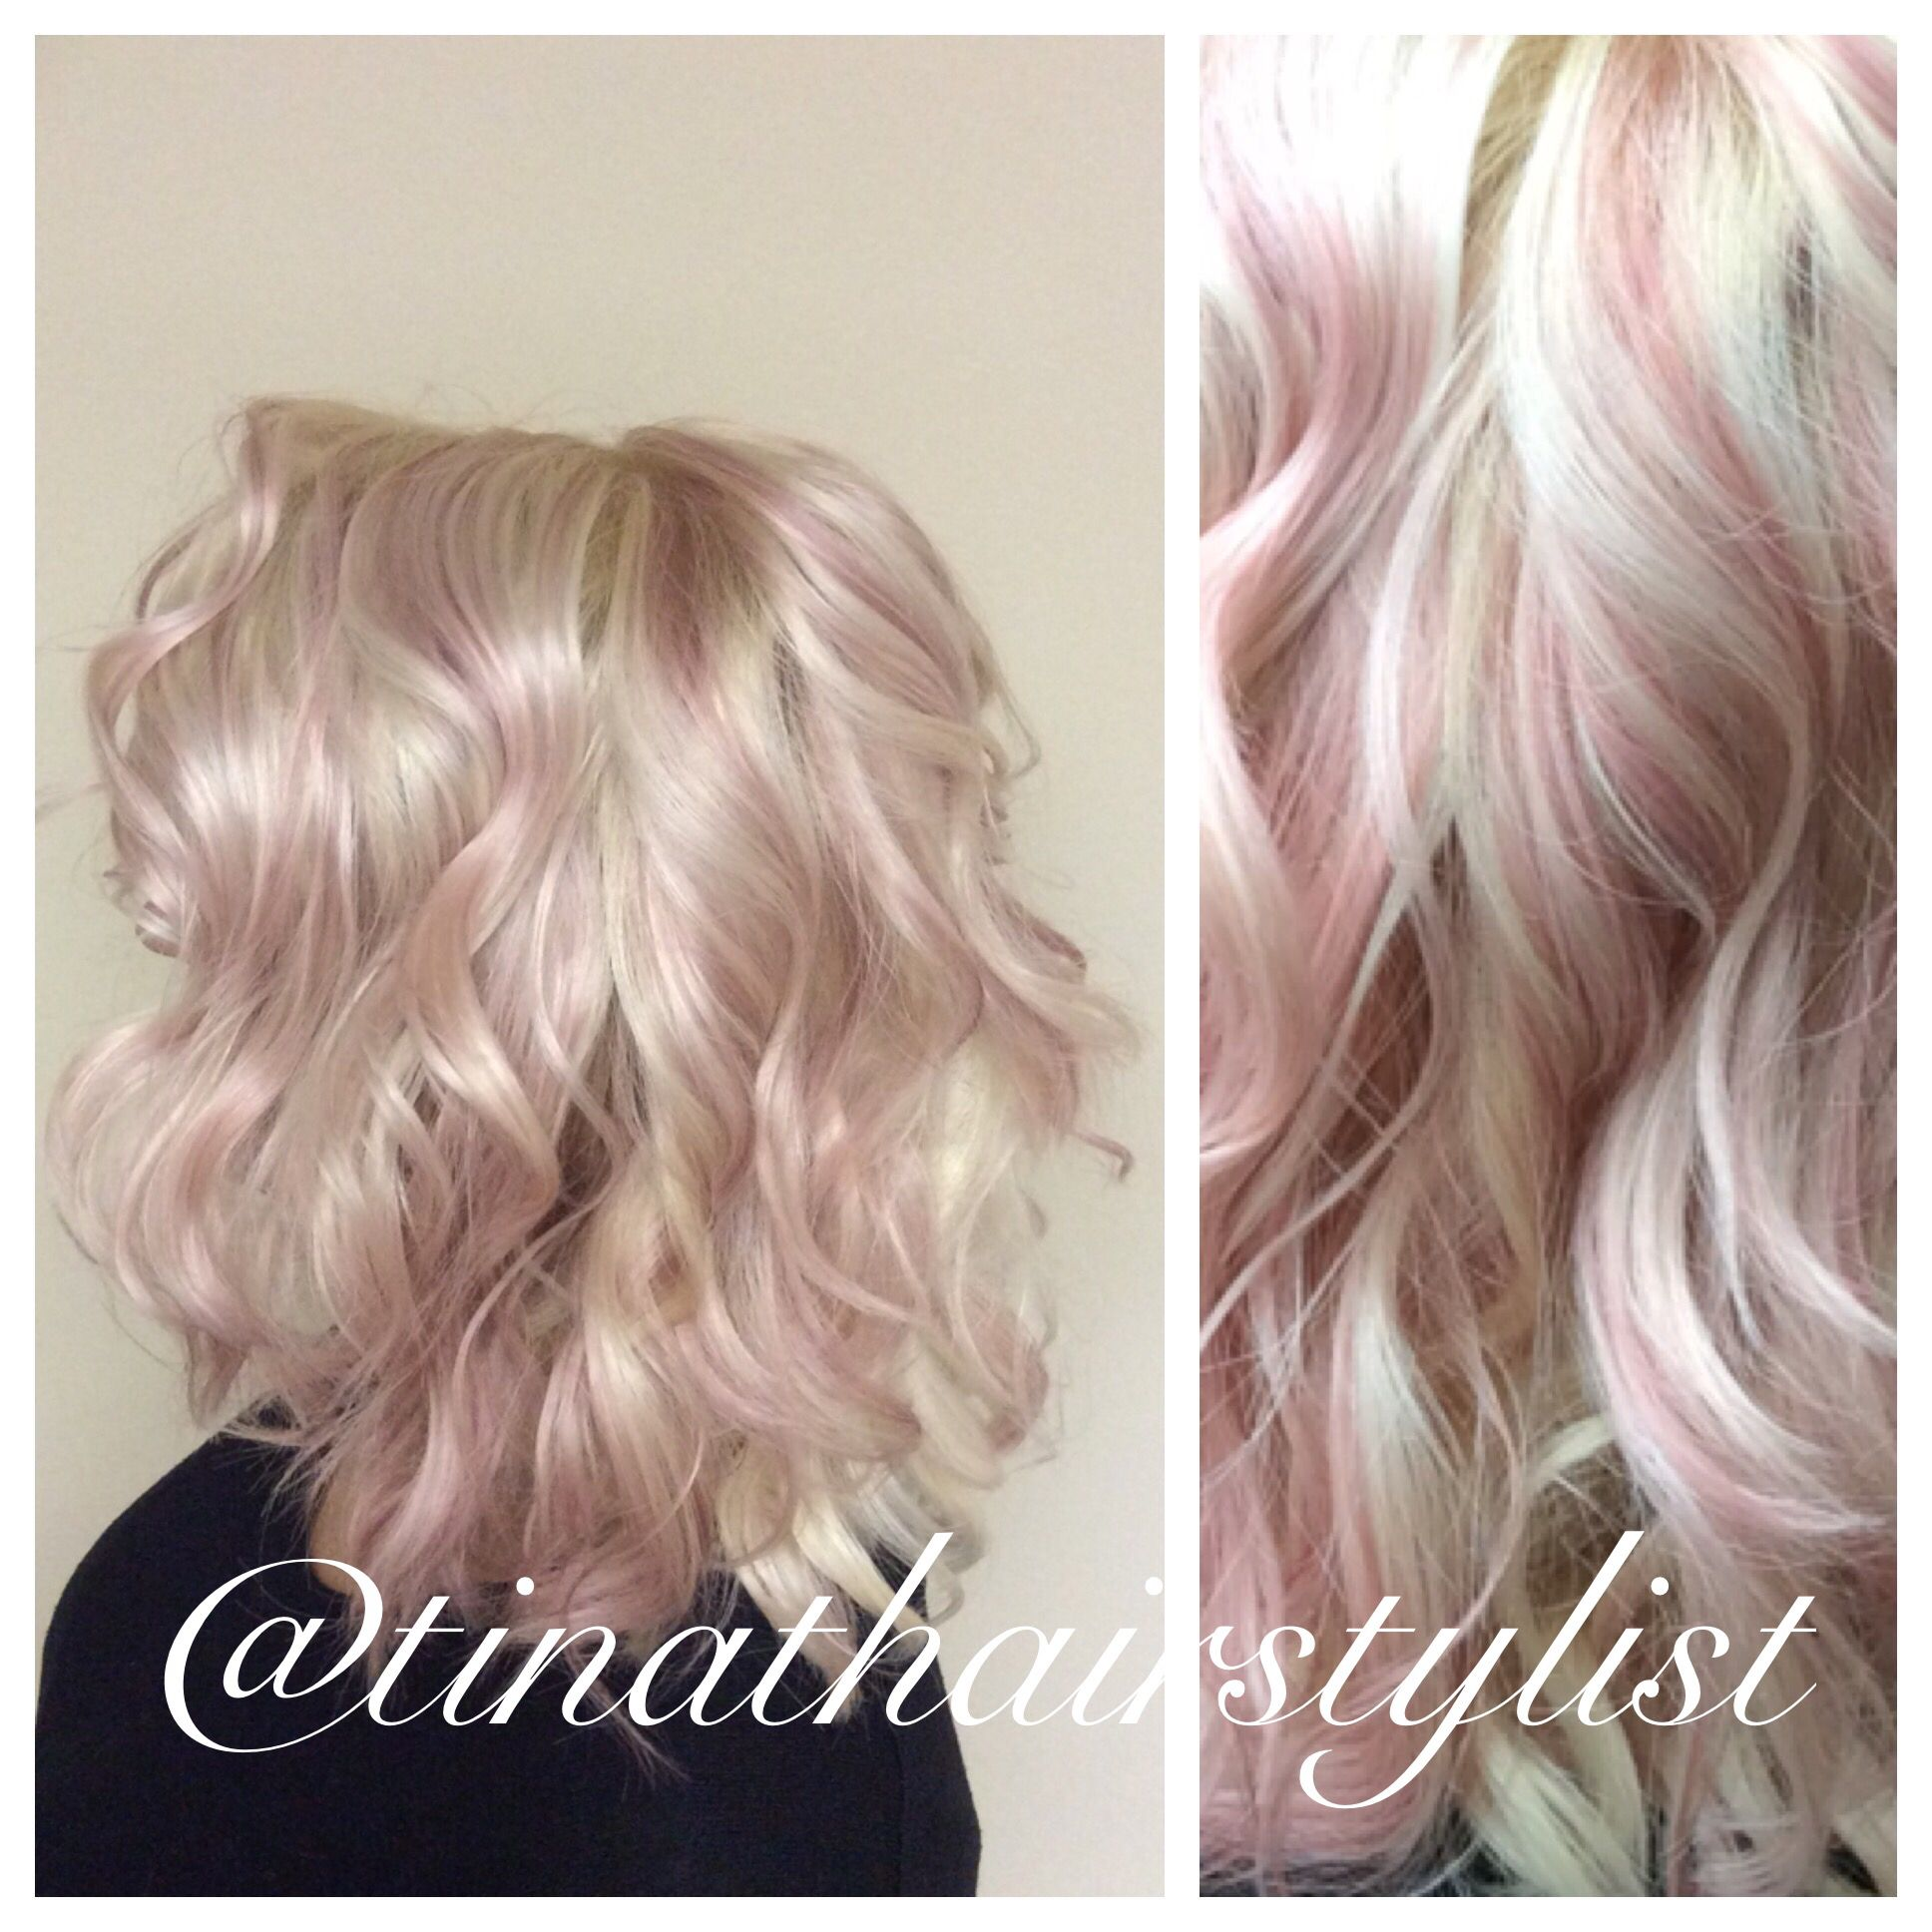 Insta Tinathairstylist Pastel Pink Dream Highlights Curly Hair Beach Waves Platinum Blonde